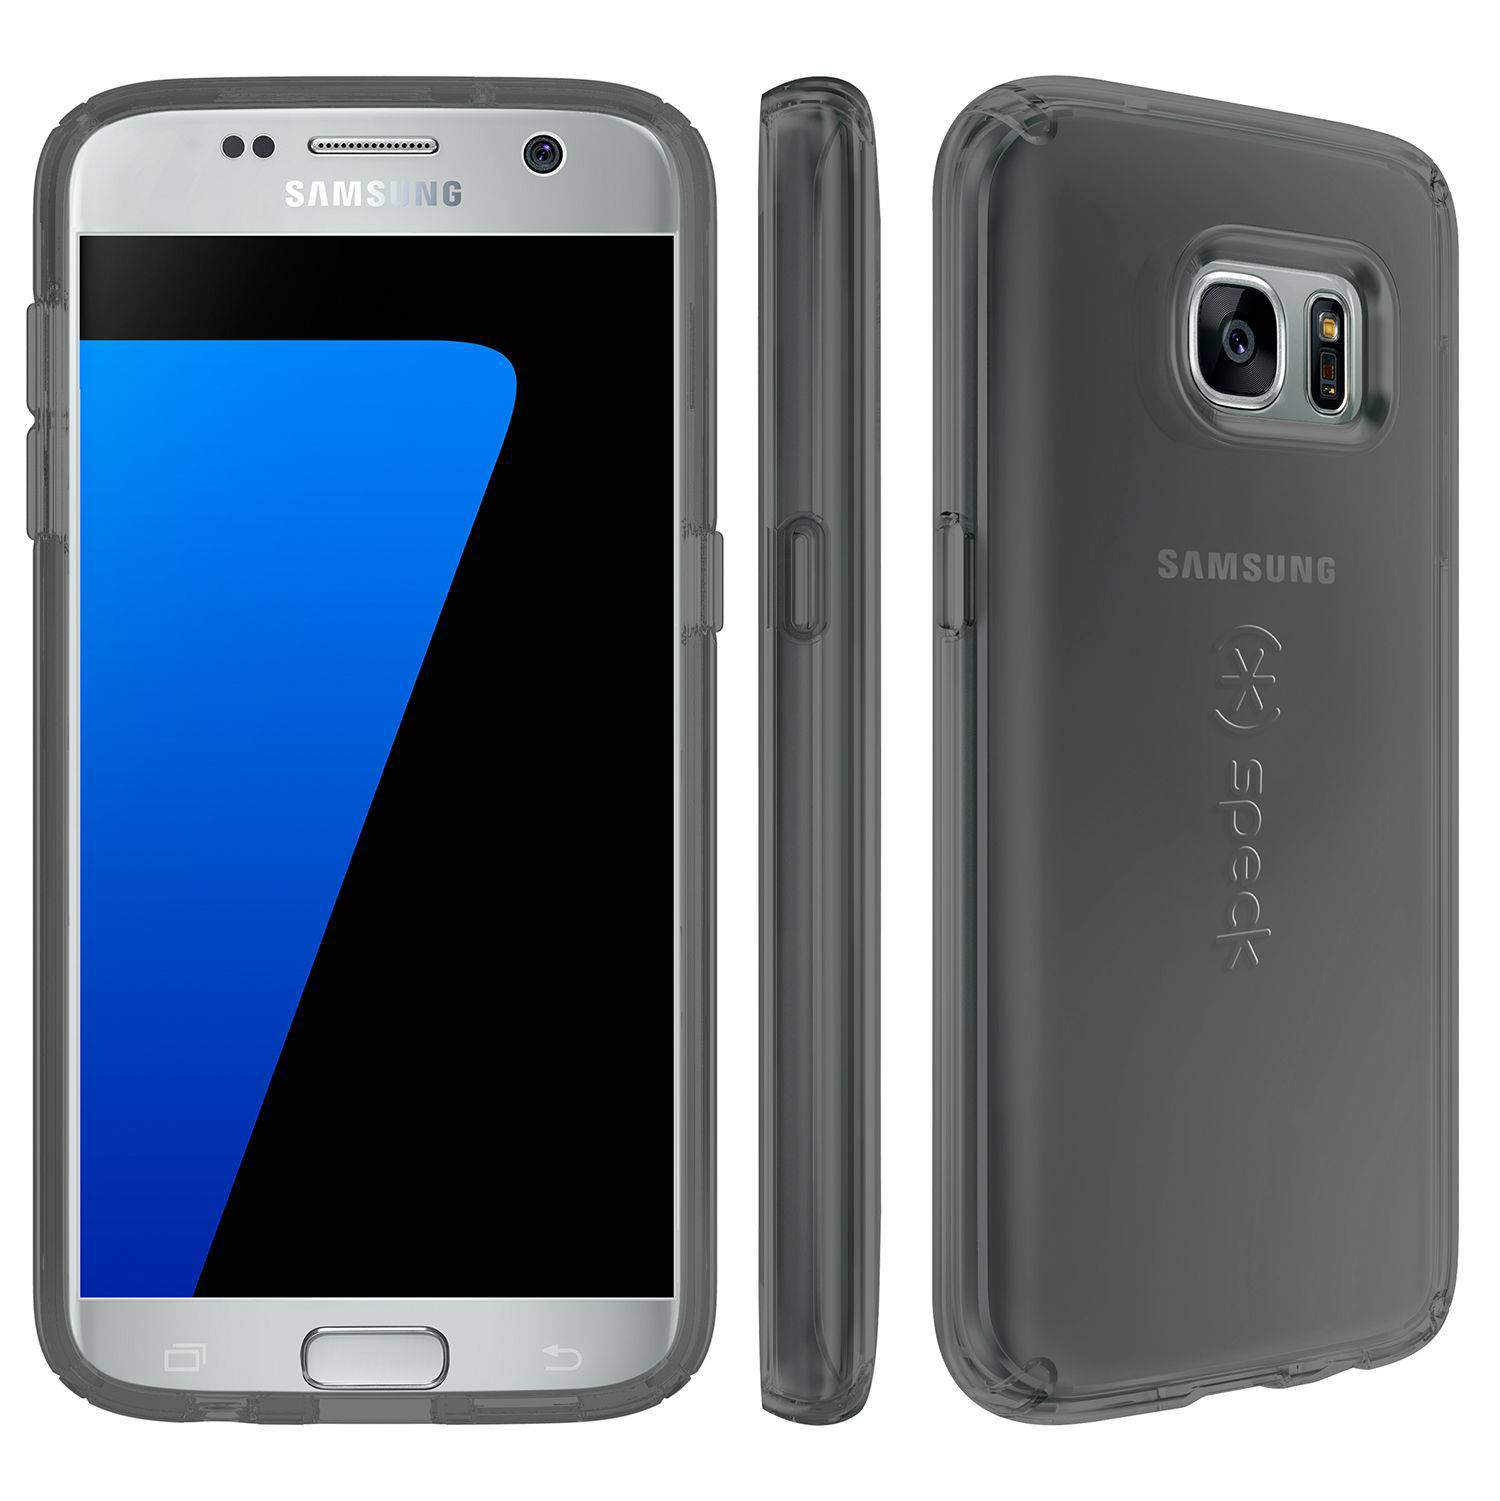 Speck Galaxy S7 Case official Image KK (2)